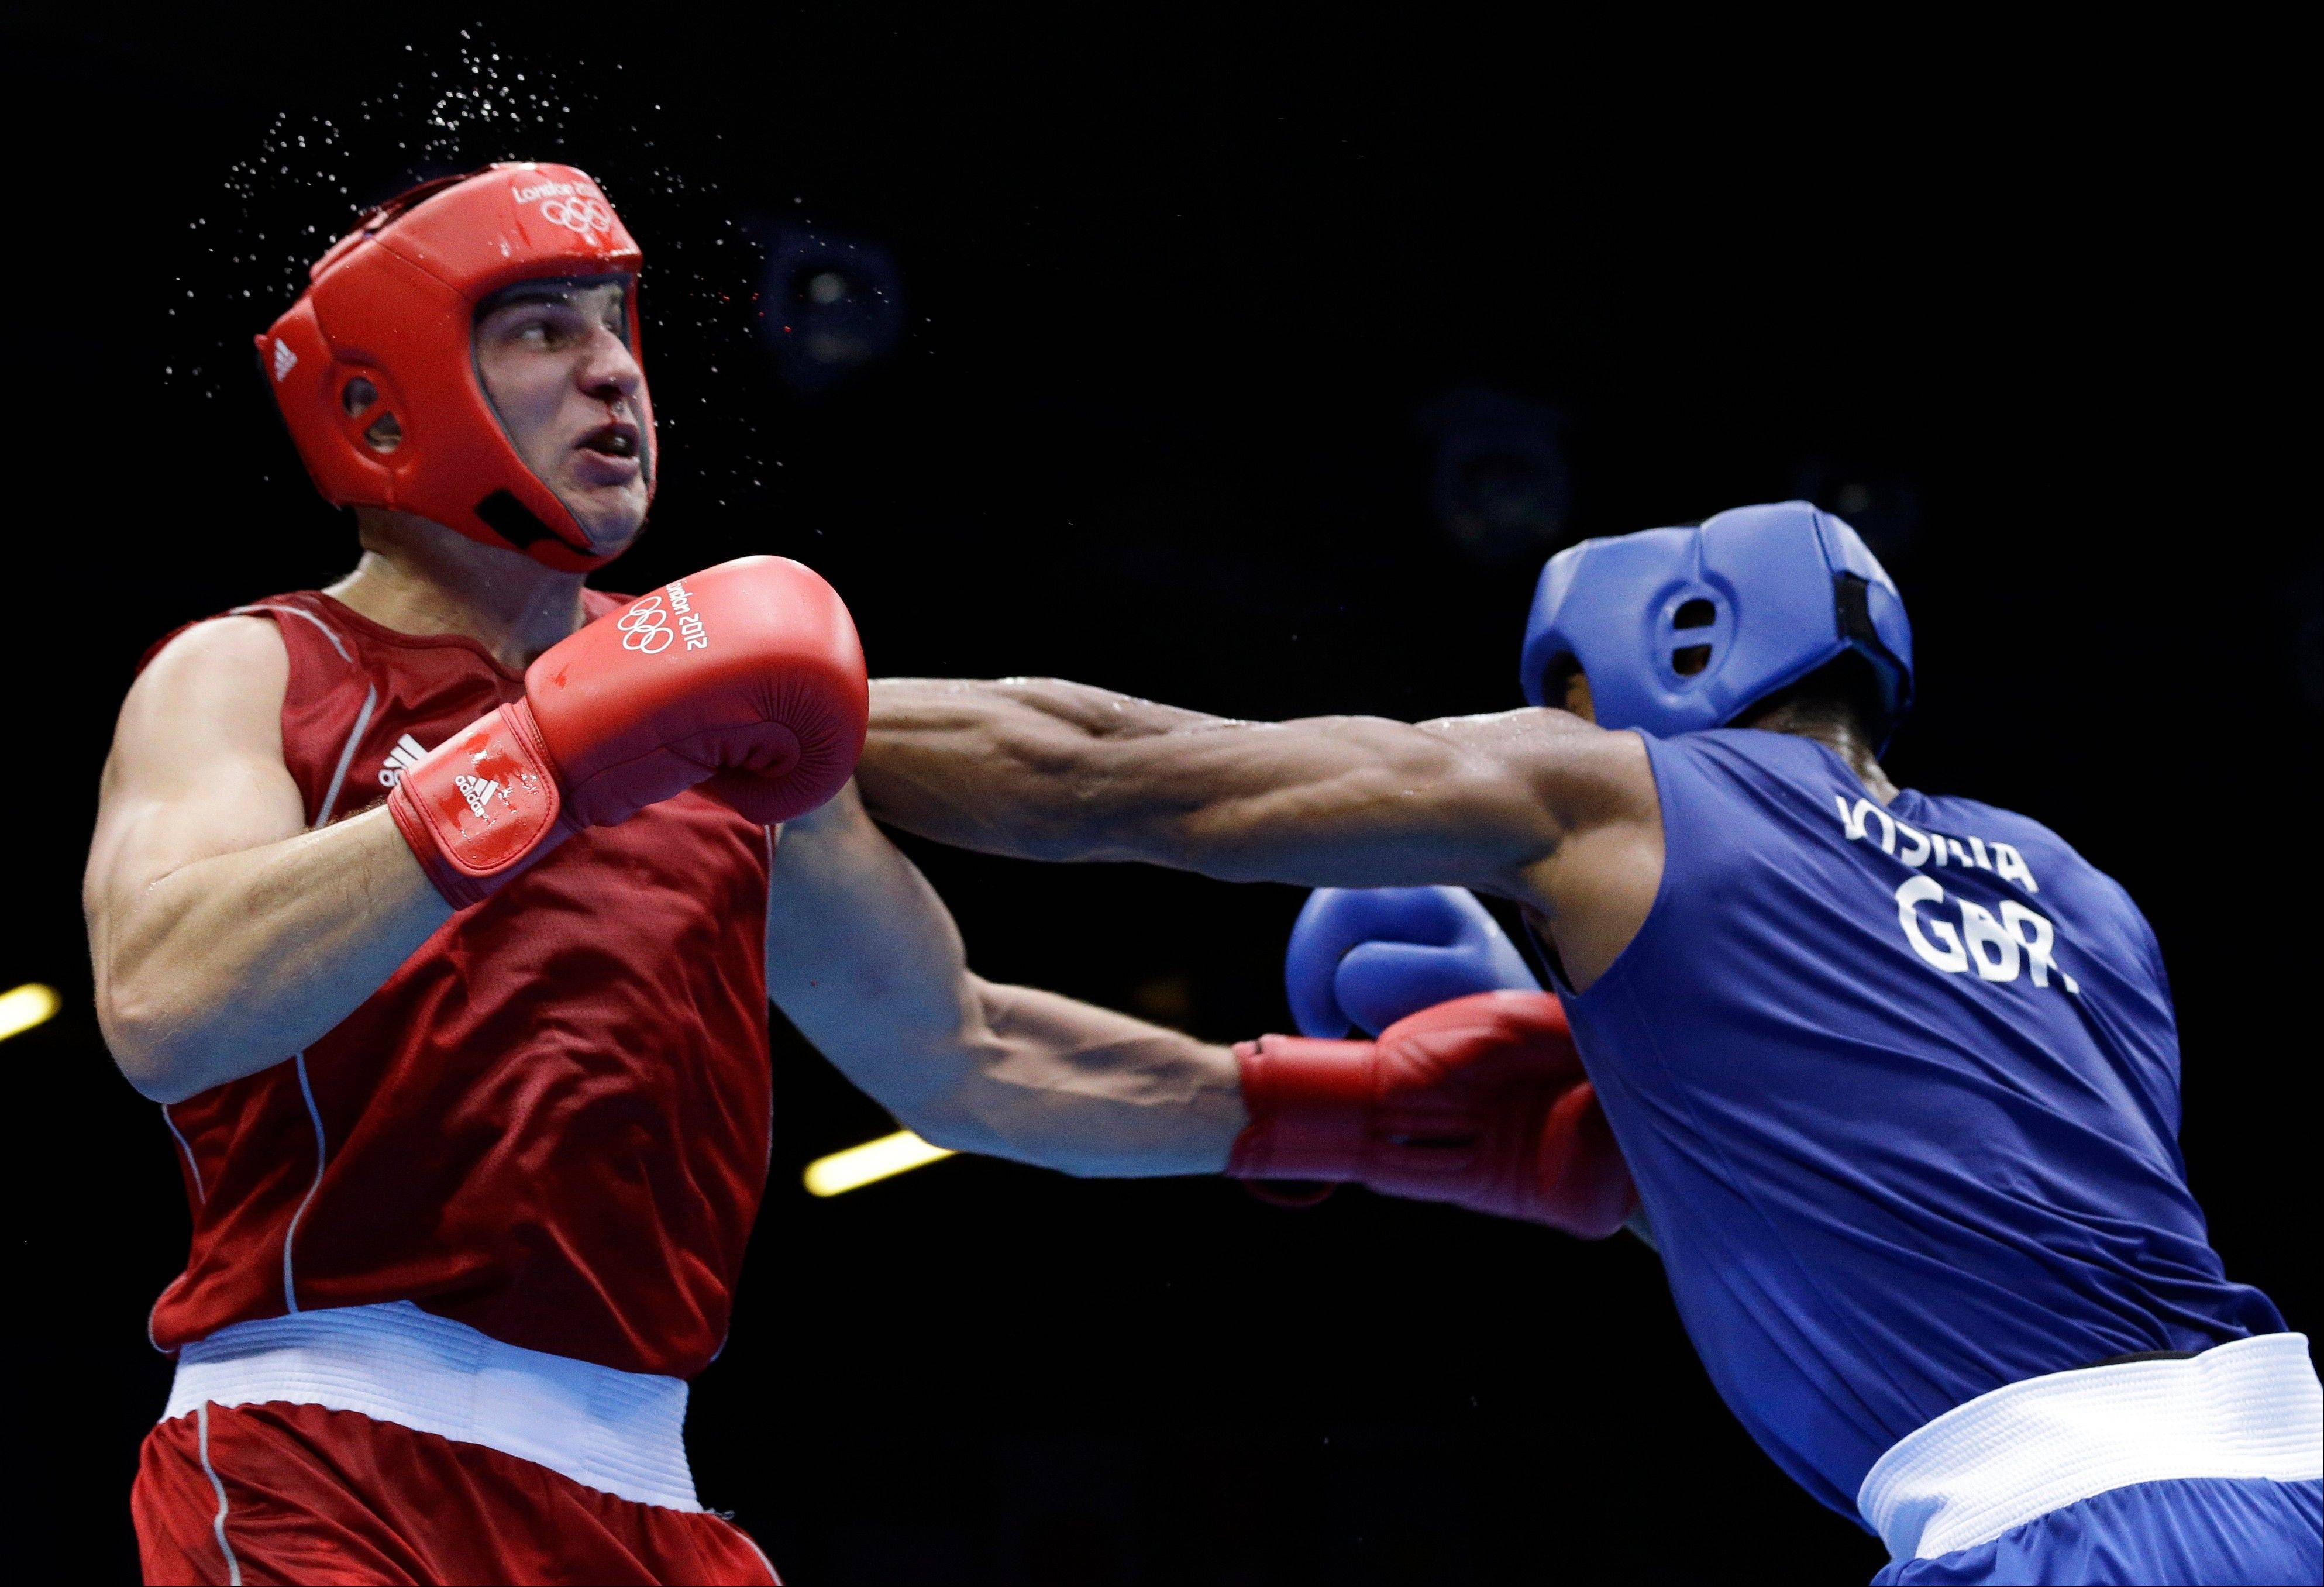 Kazakhstan's Ivan Dychko, left, fights Britain's Anthony Joshua in a super heavyweight over 91-kg semifinal boxing match at the 2012 Summer Olympics, Friday, Aug. 10, 2012, in London.